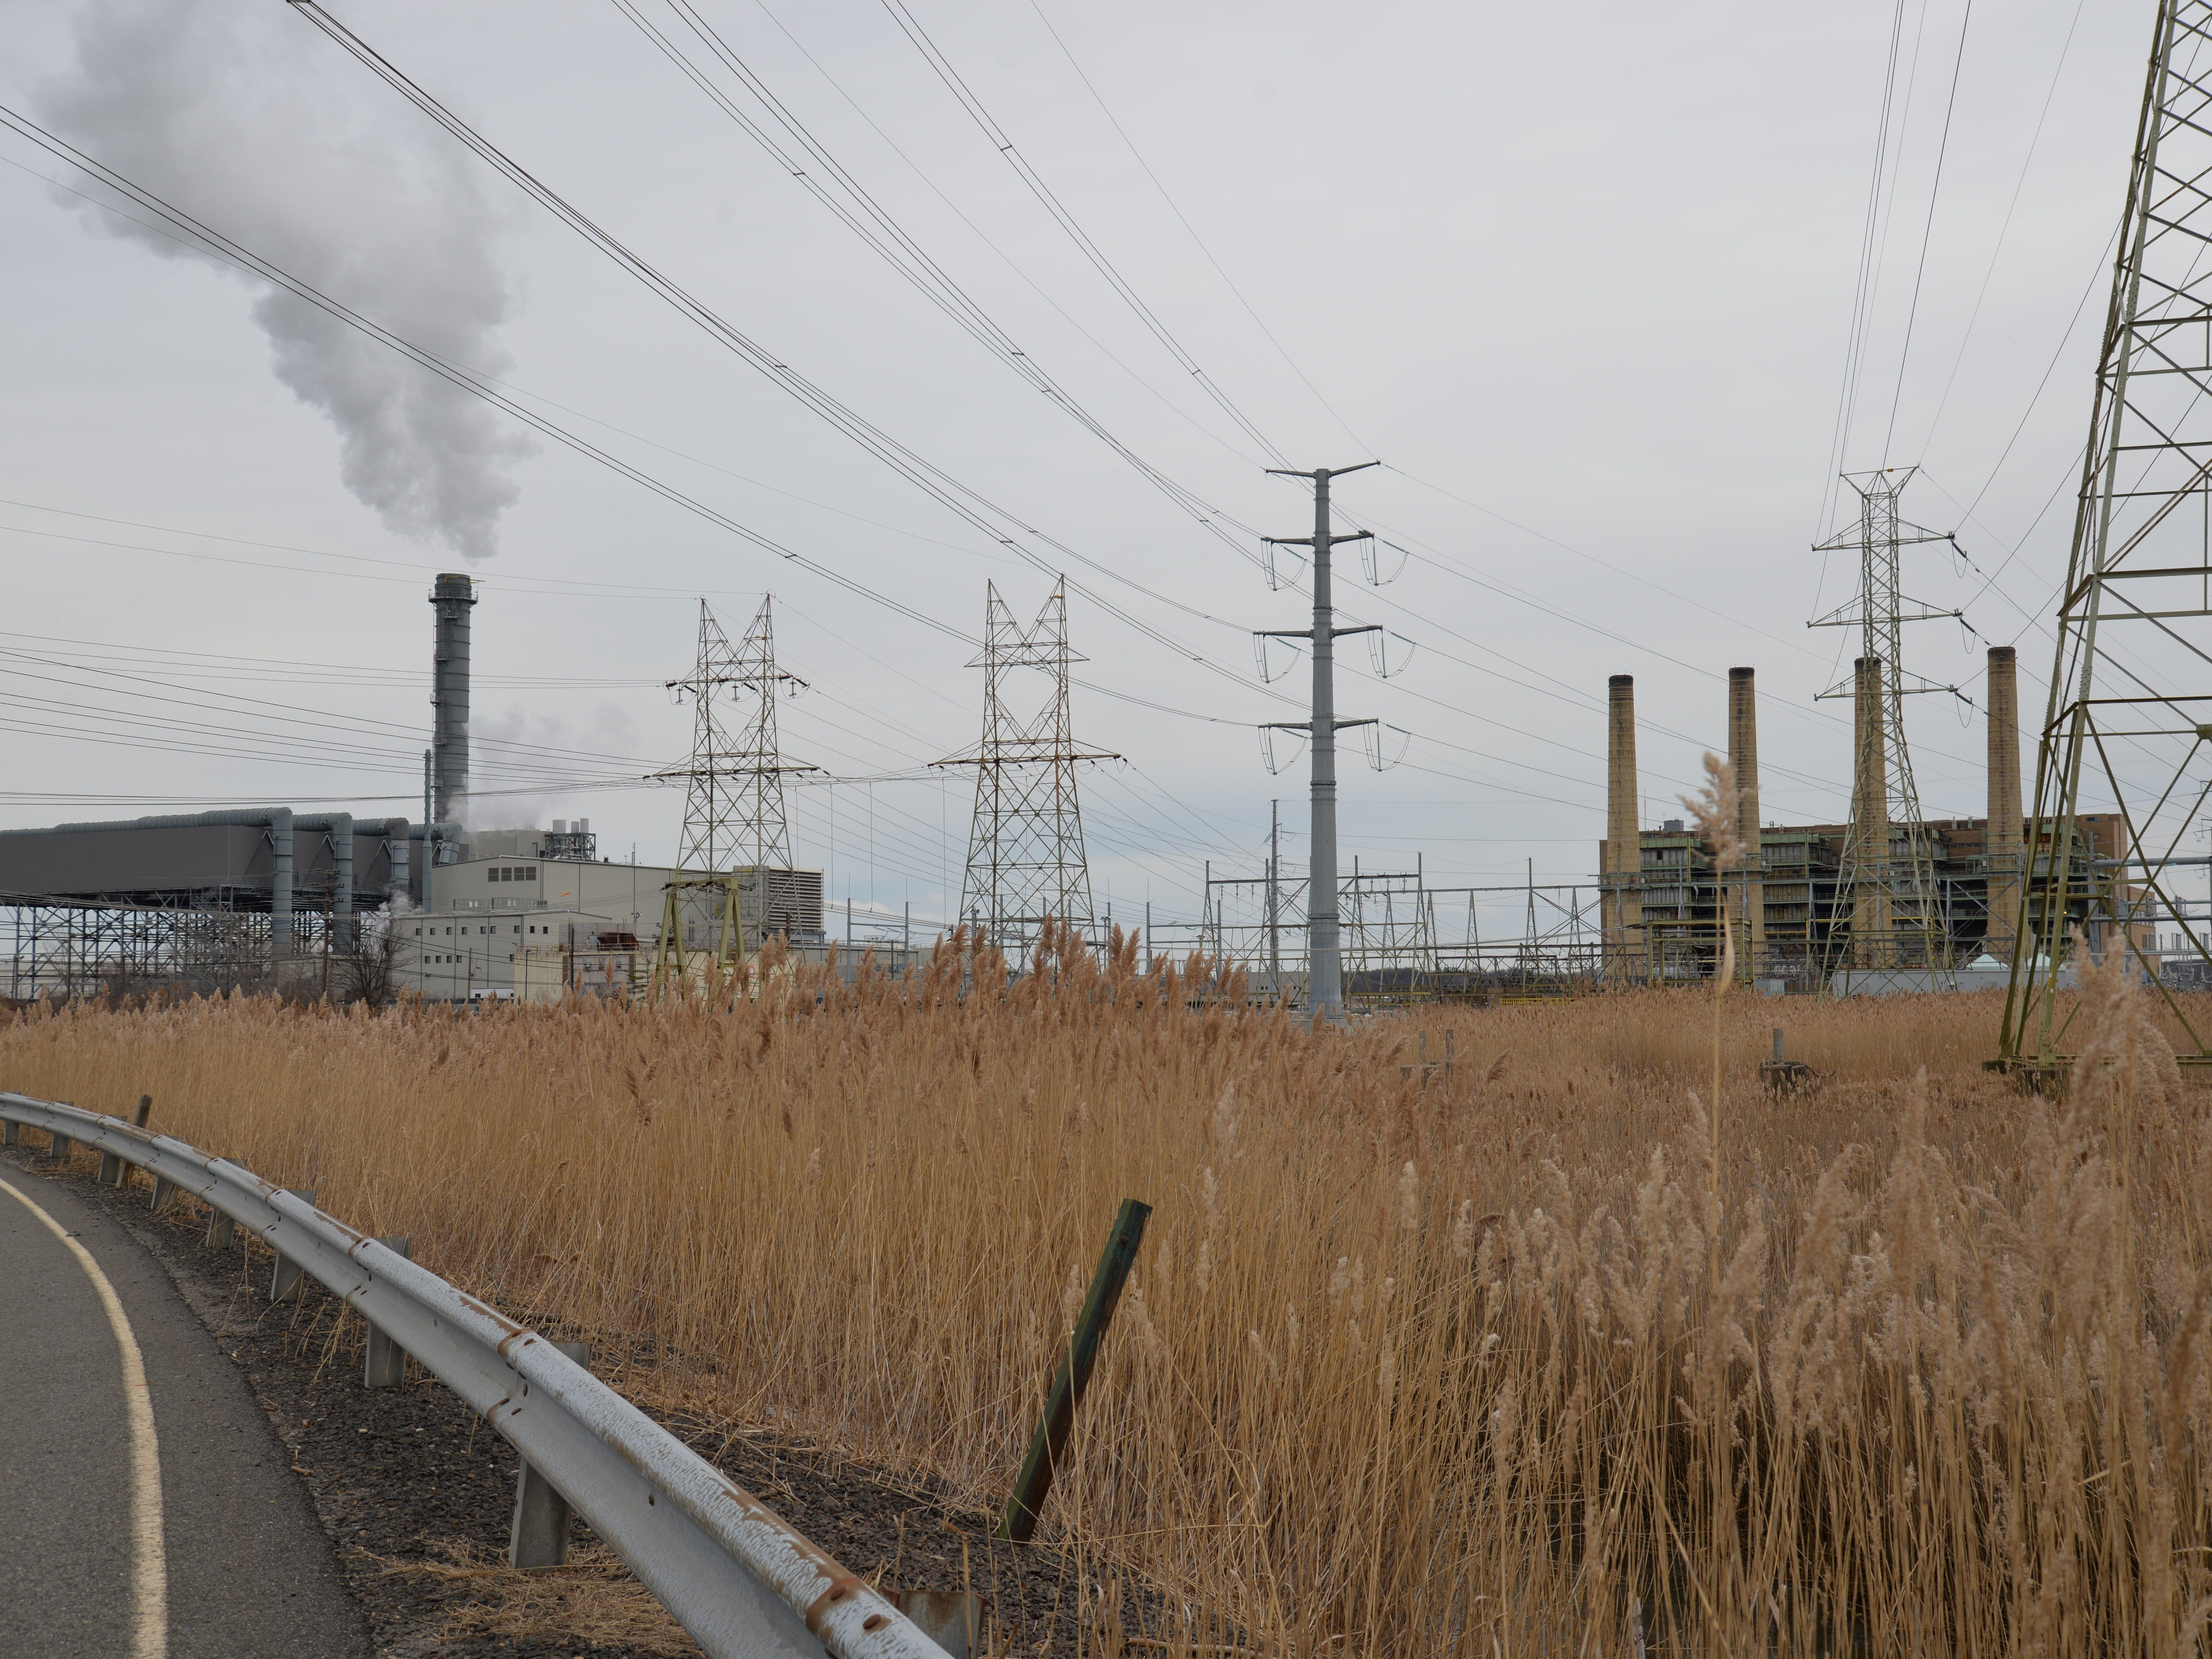 PSEG's new $600 million Sewaren 7 is a 540-megawatt combined-cycle power plant that replaced a 70-year-old coal-fired plant at 751 Cliff Road in the Sewaren section of Woodbridge Township. The plant provides electricity to a half million homes, as well as $102 million in tax revenue to the township, plus 28 fulltime jobs.